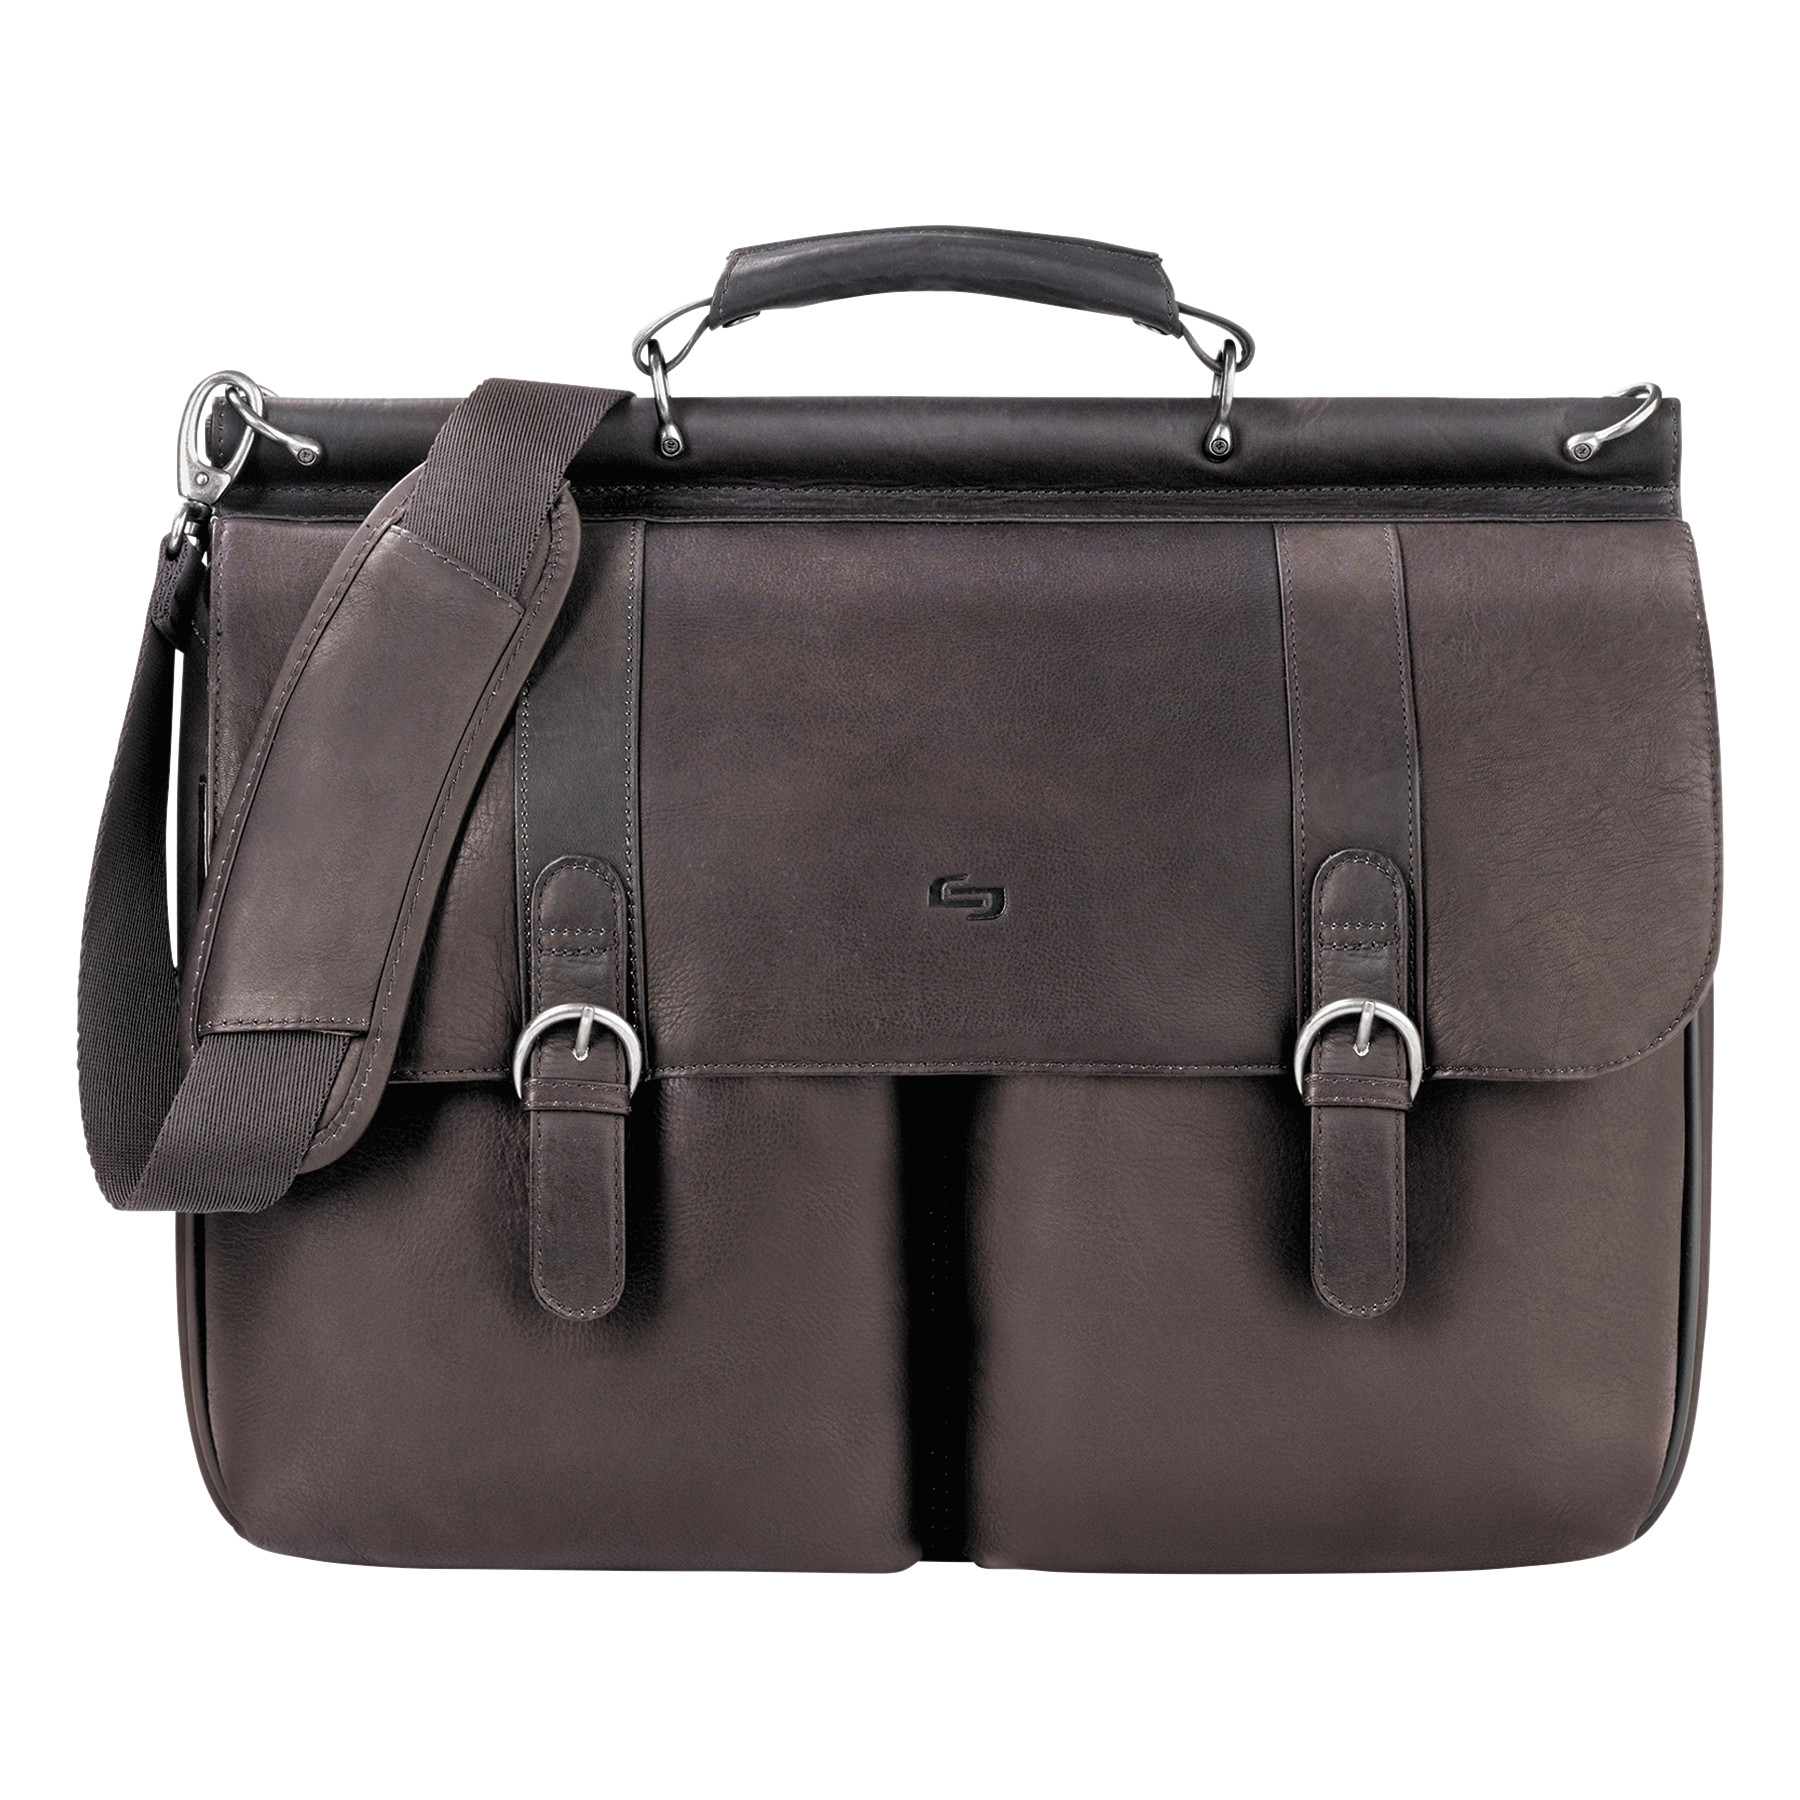 "Solo Executive Leather Briefcase, 16"", 16 1/2"" x 5"" x 13"", Espresso"